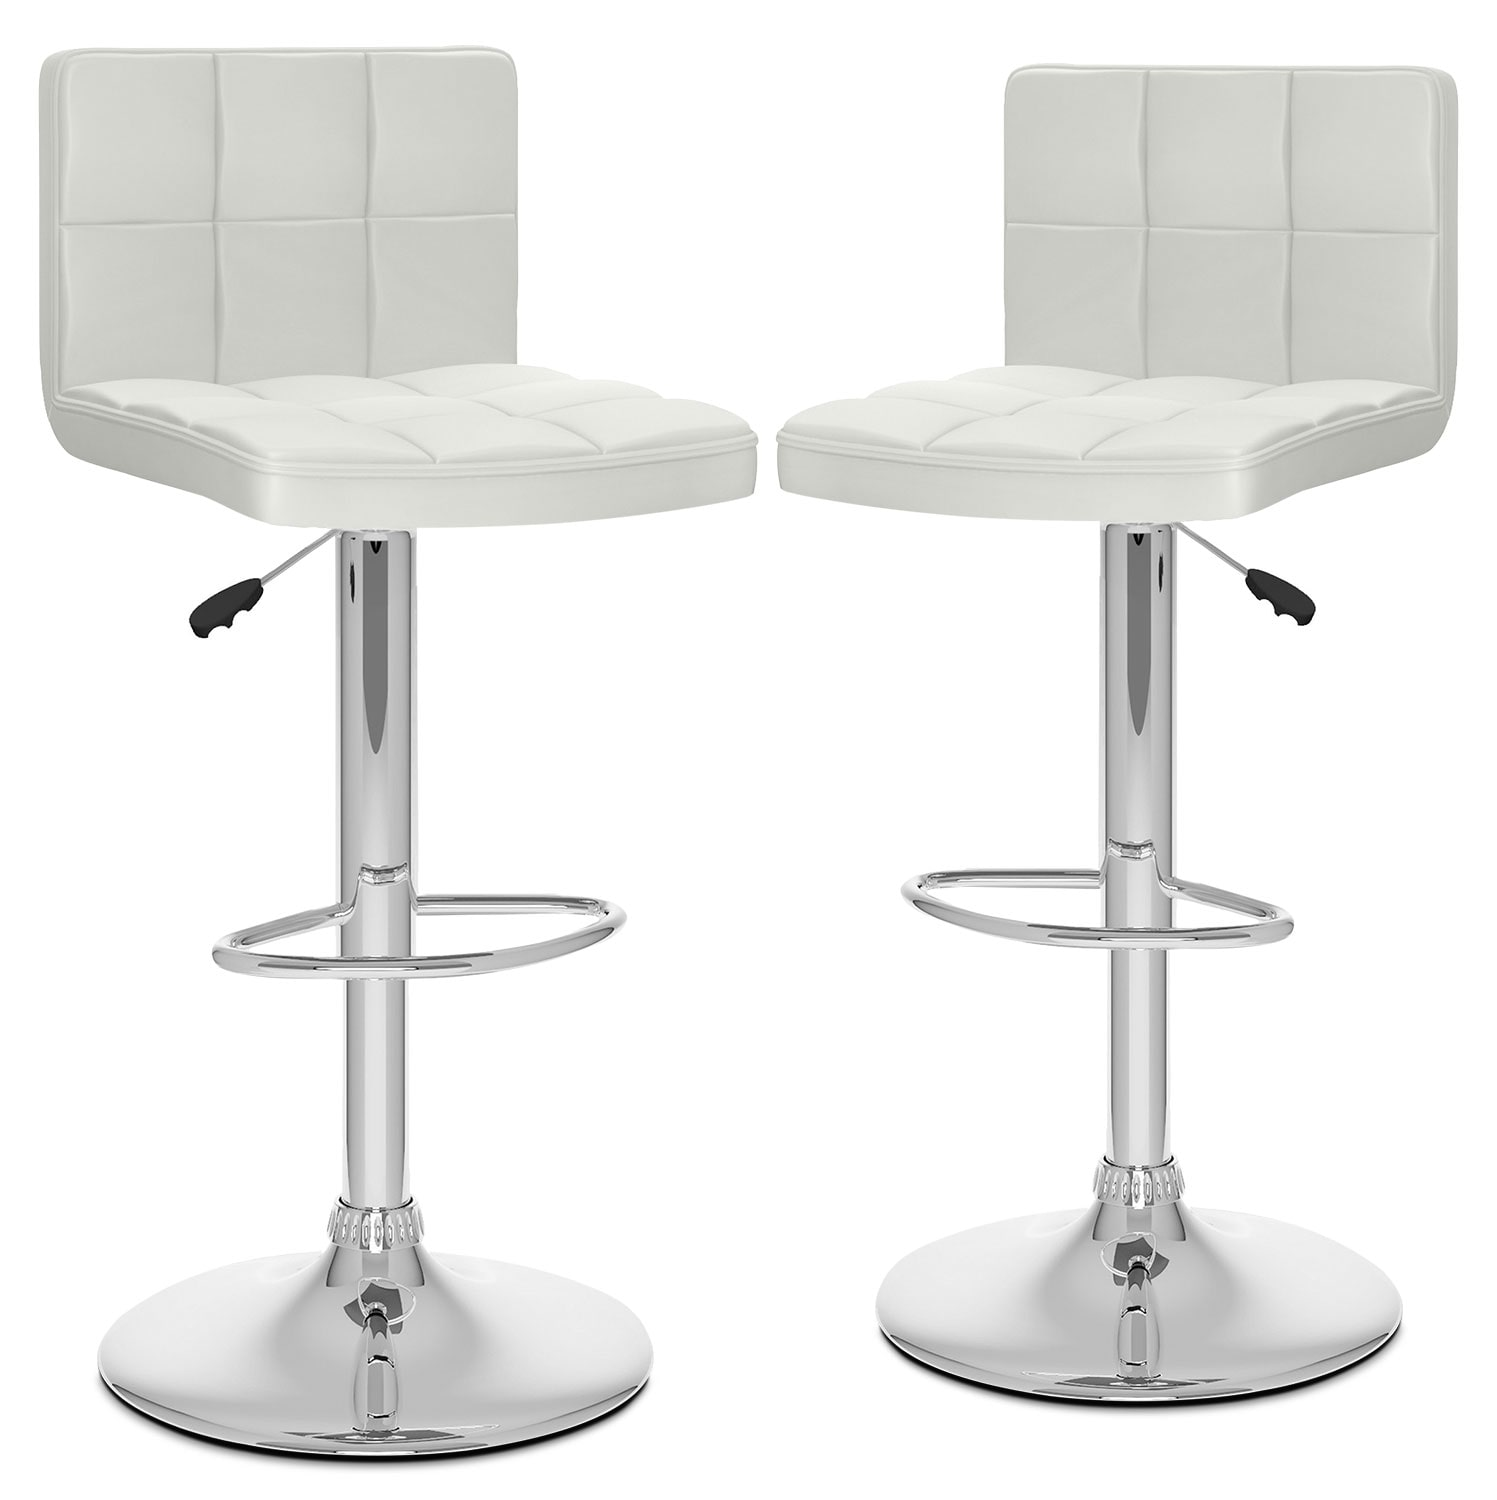 Dining Room Furniture - CorLiving High-Back Adjustable Bar Stool, Set of 2 – White